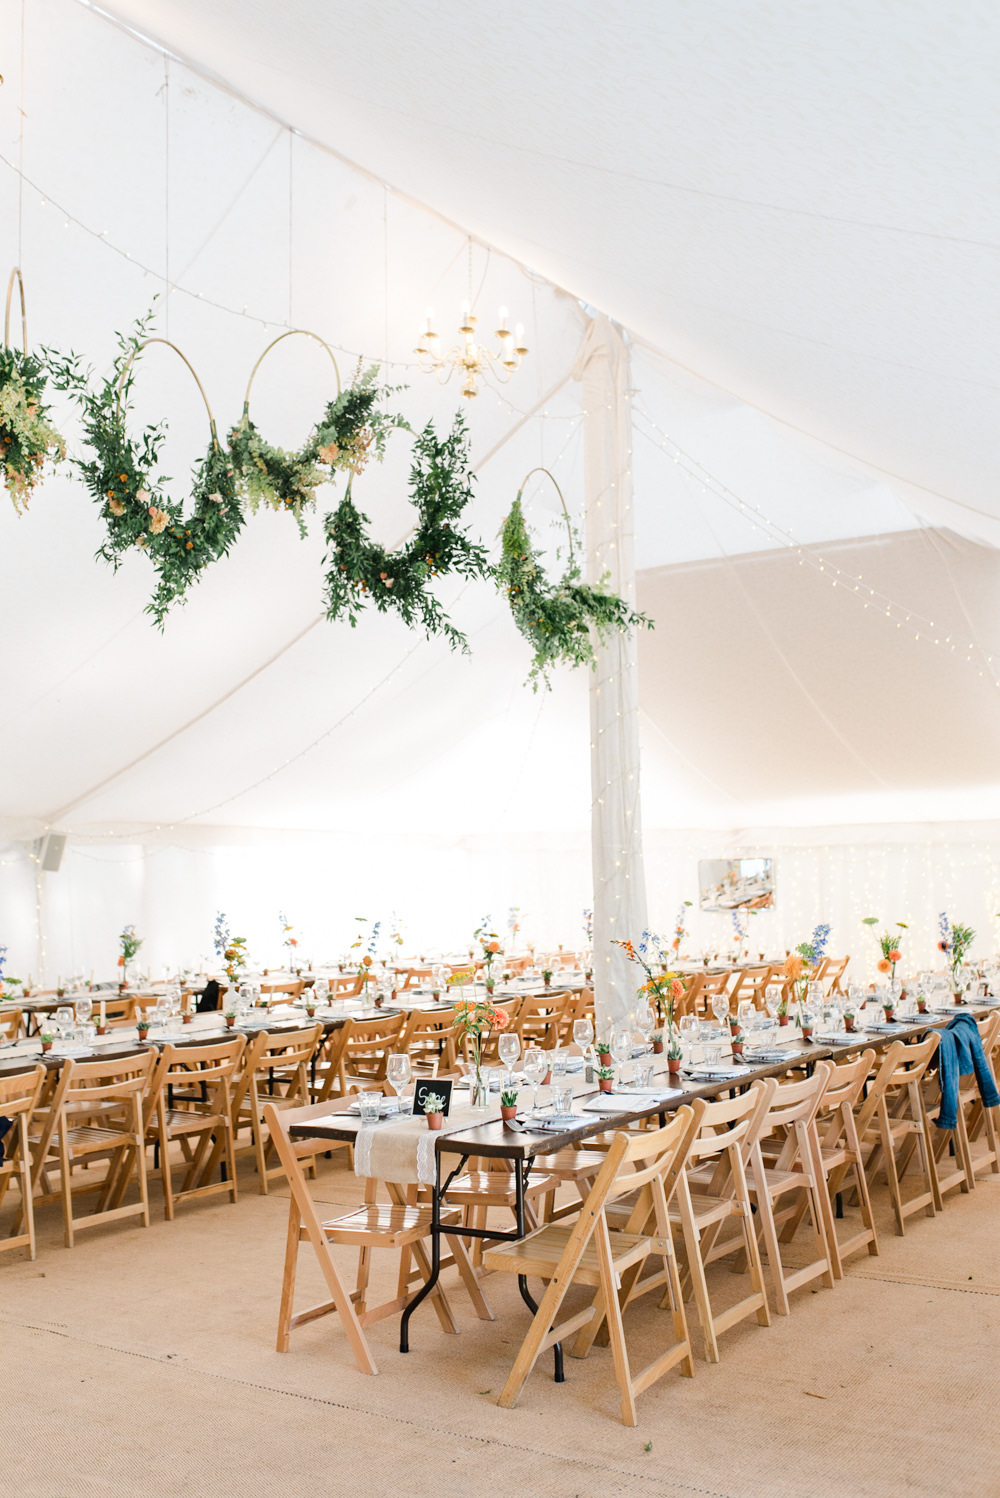 Marquee Fairy Lights Hoops Wreaths Greenery Foliage Flower Haning Suspended Long Tables Trestle Perch Inn Wedding Captured By Katrina